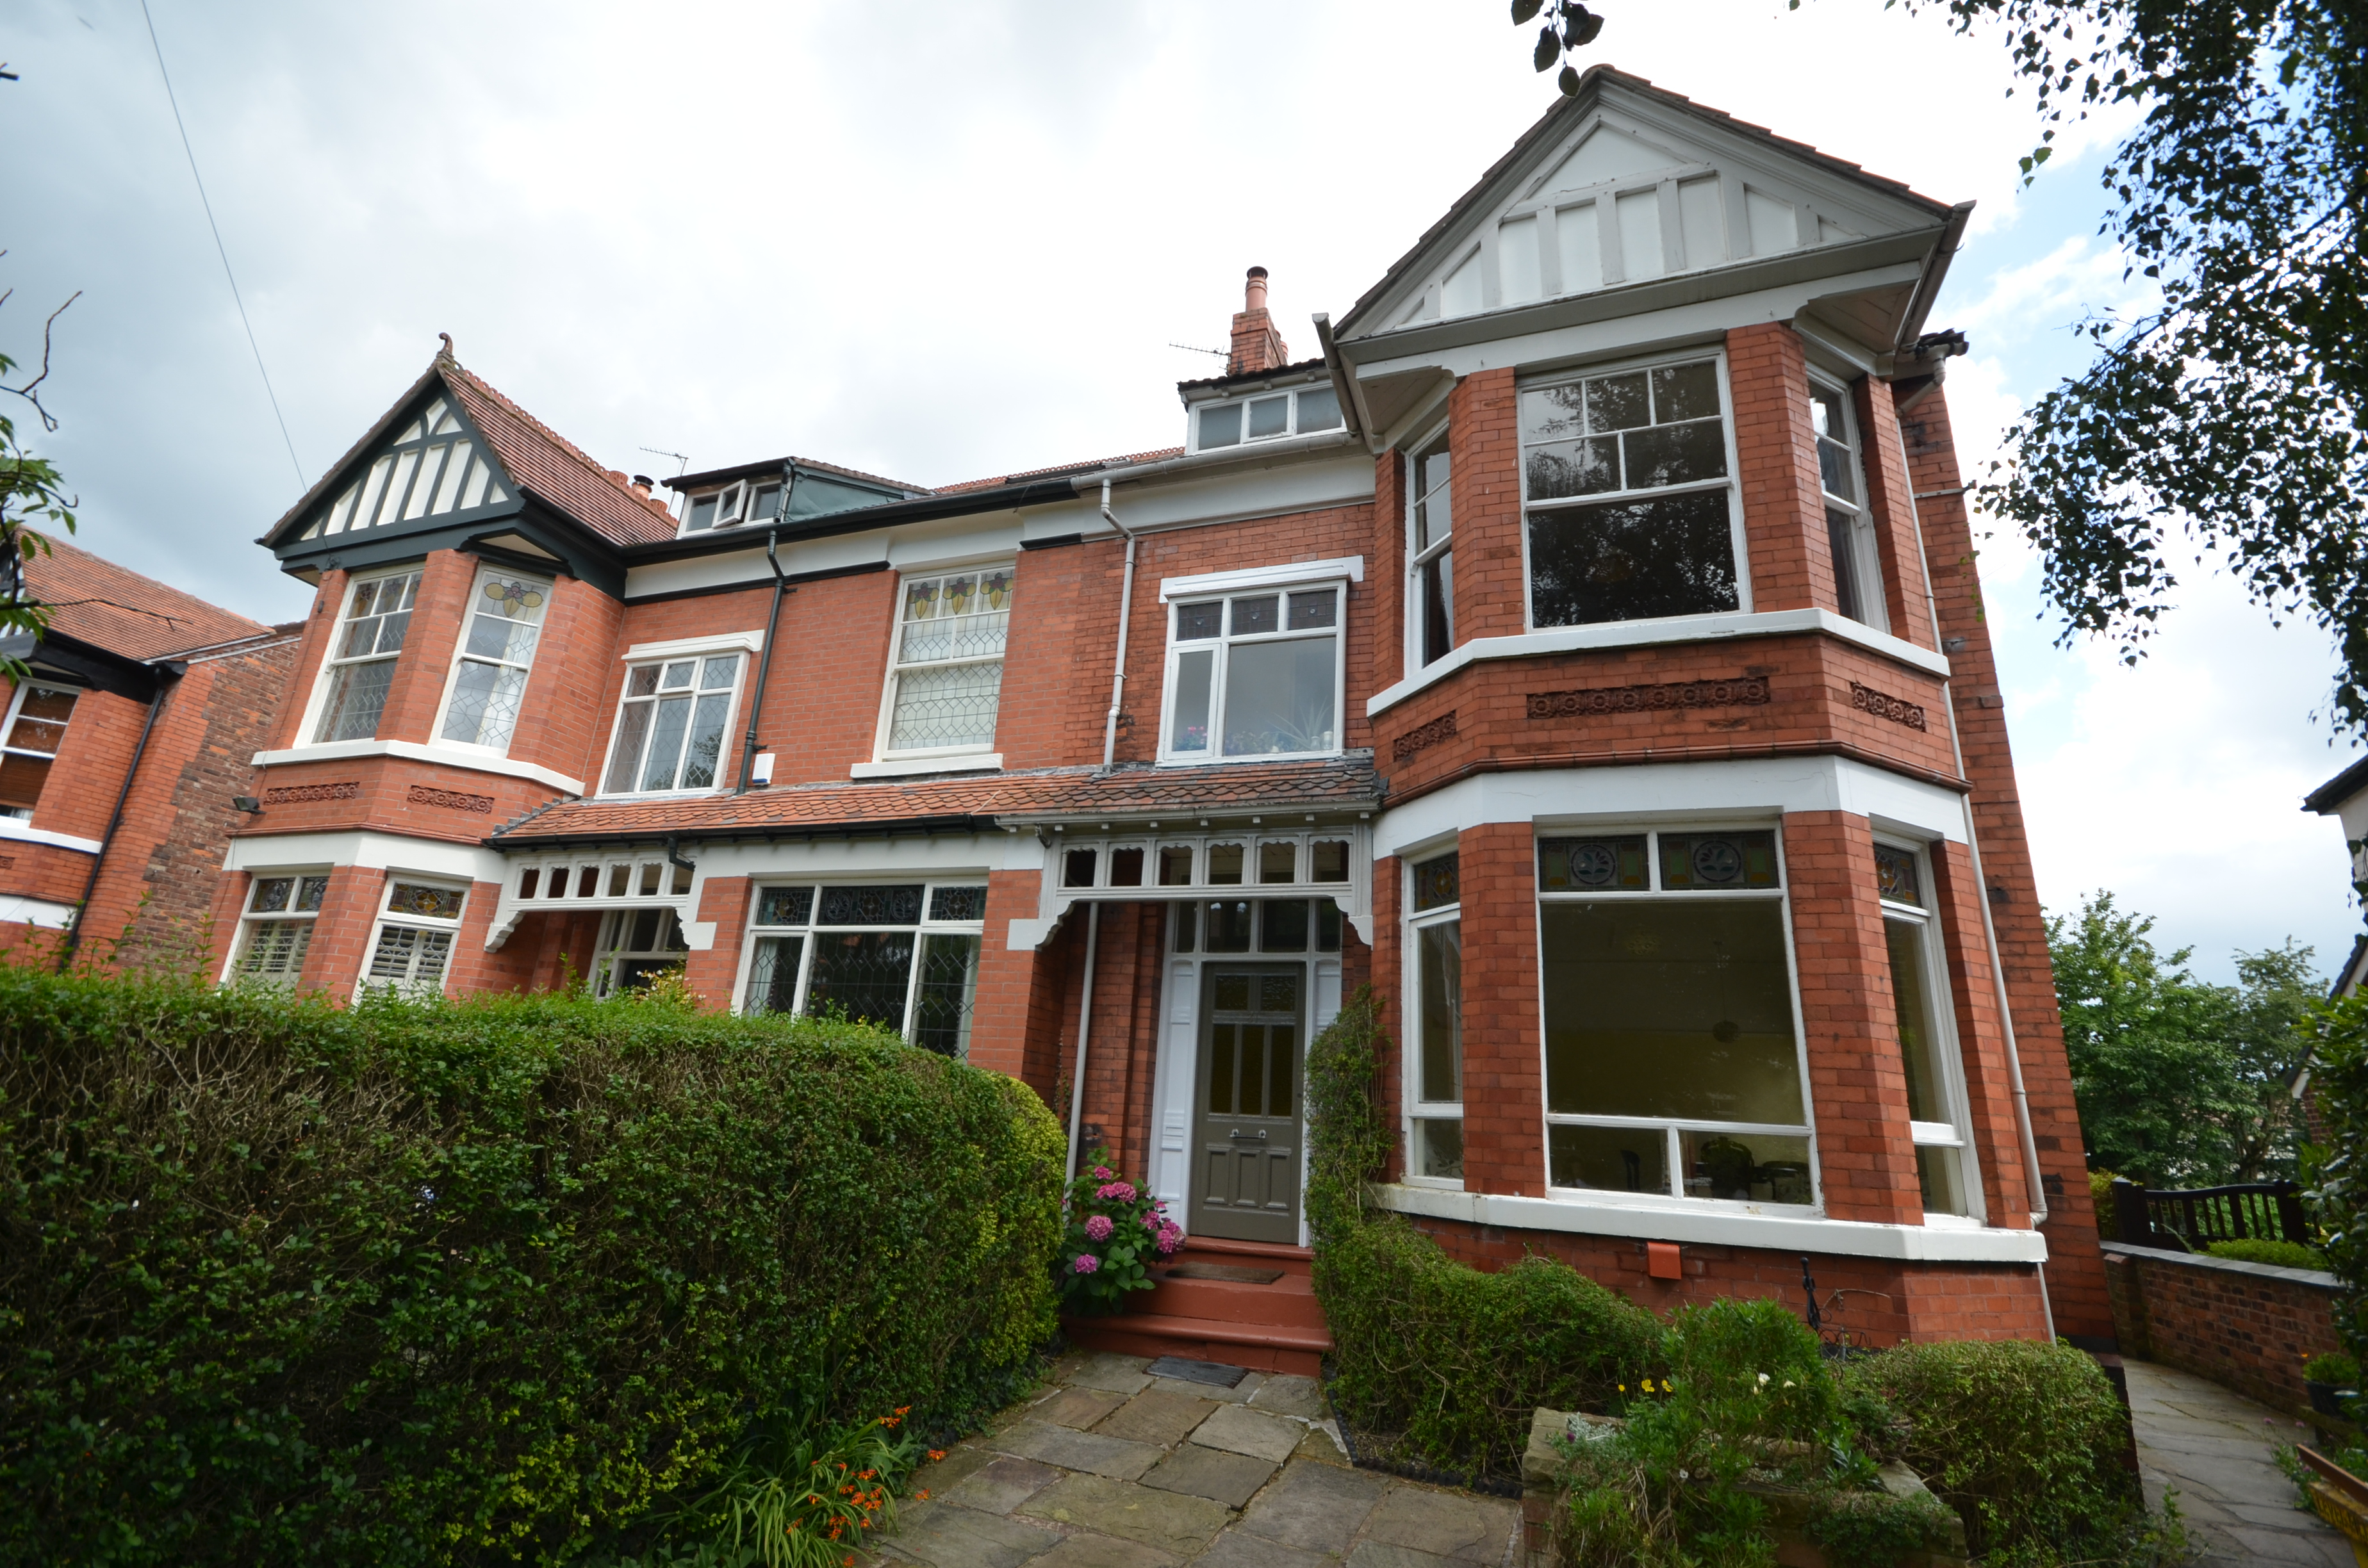 house in didsbury